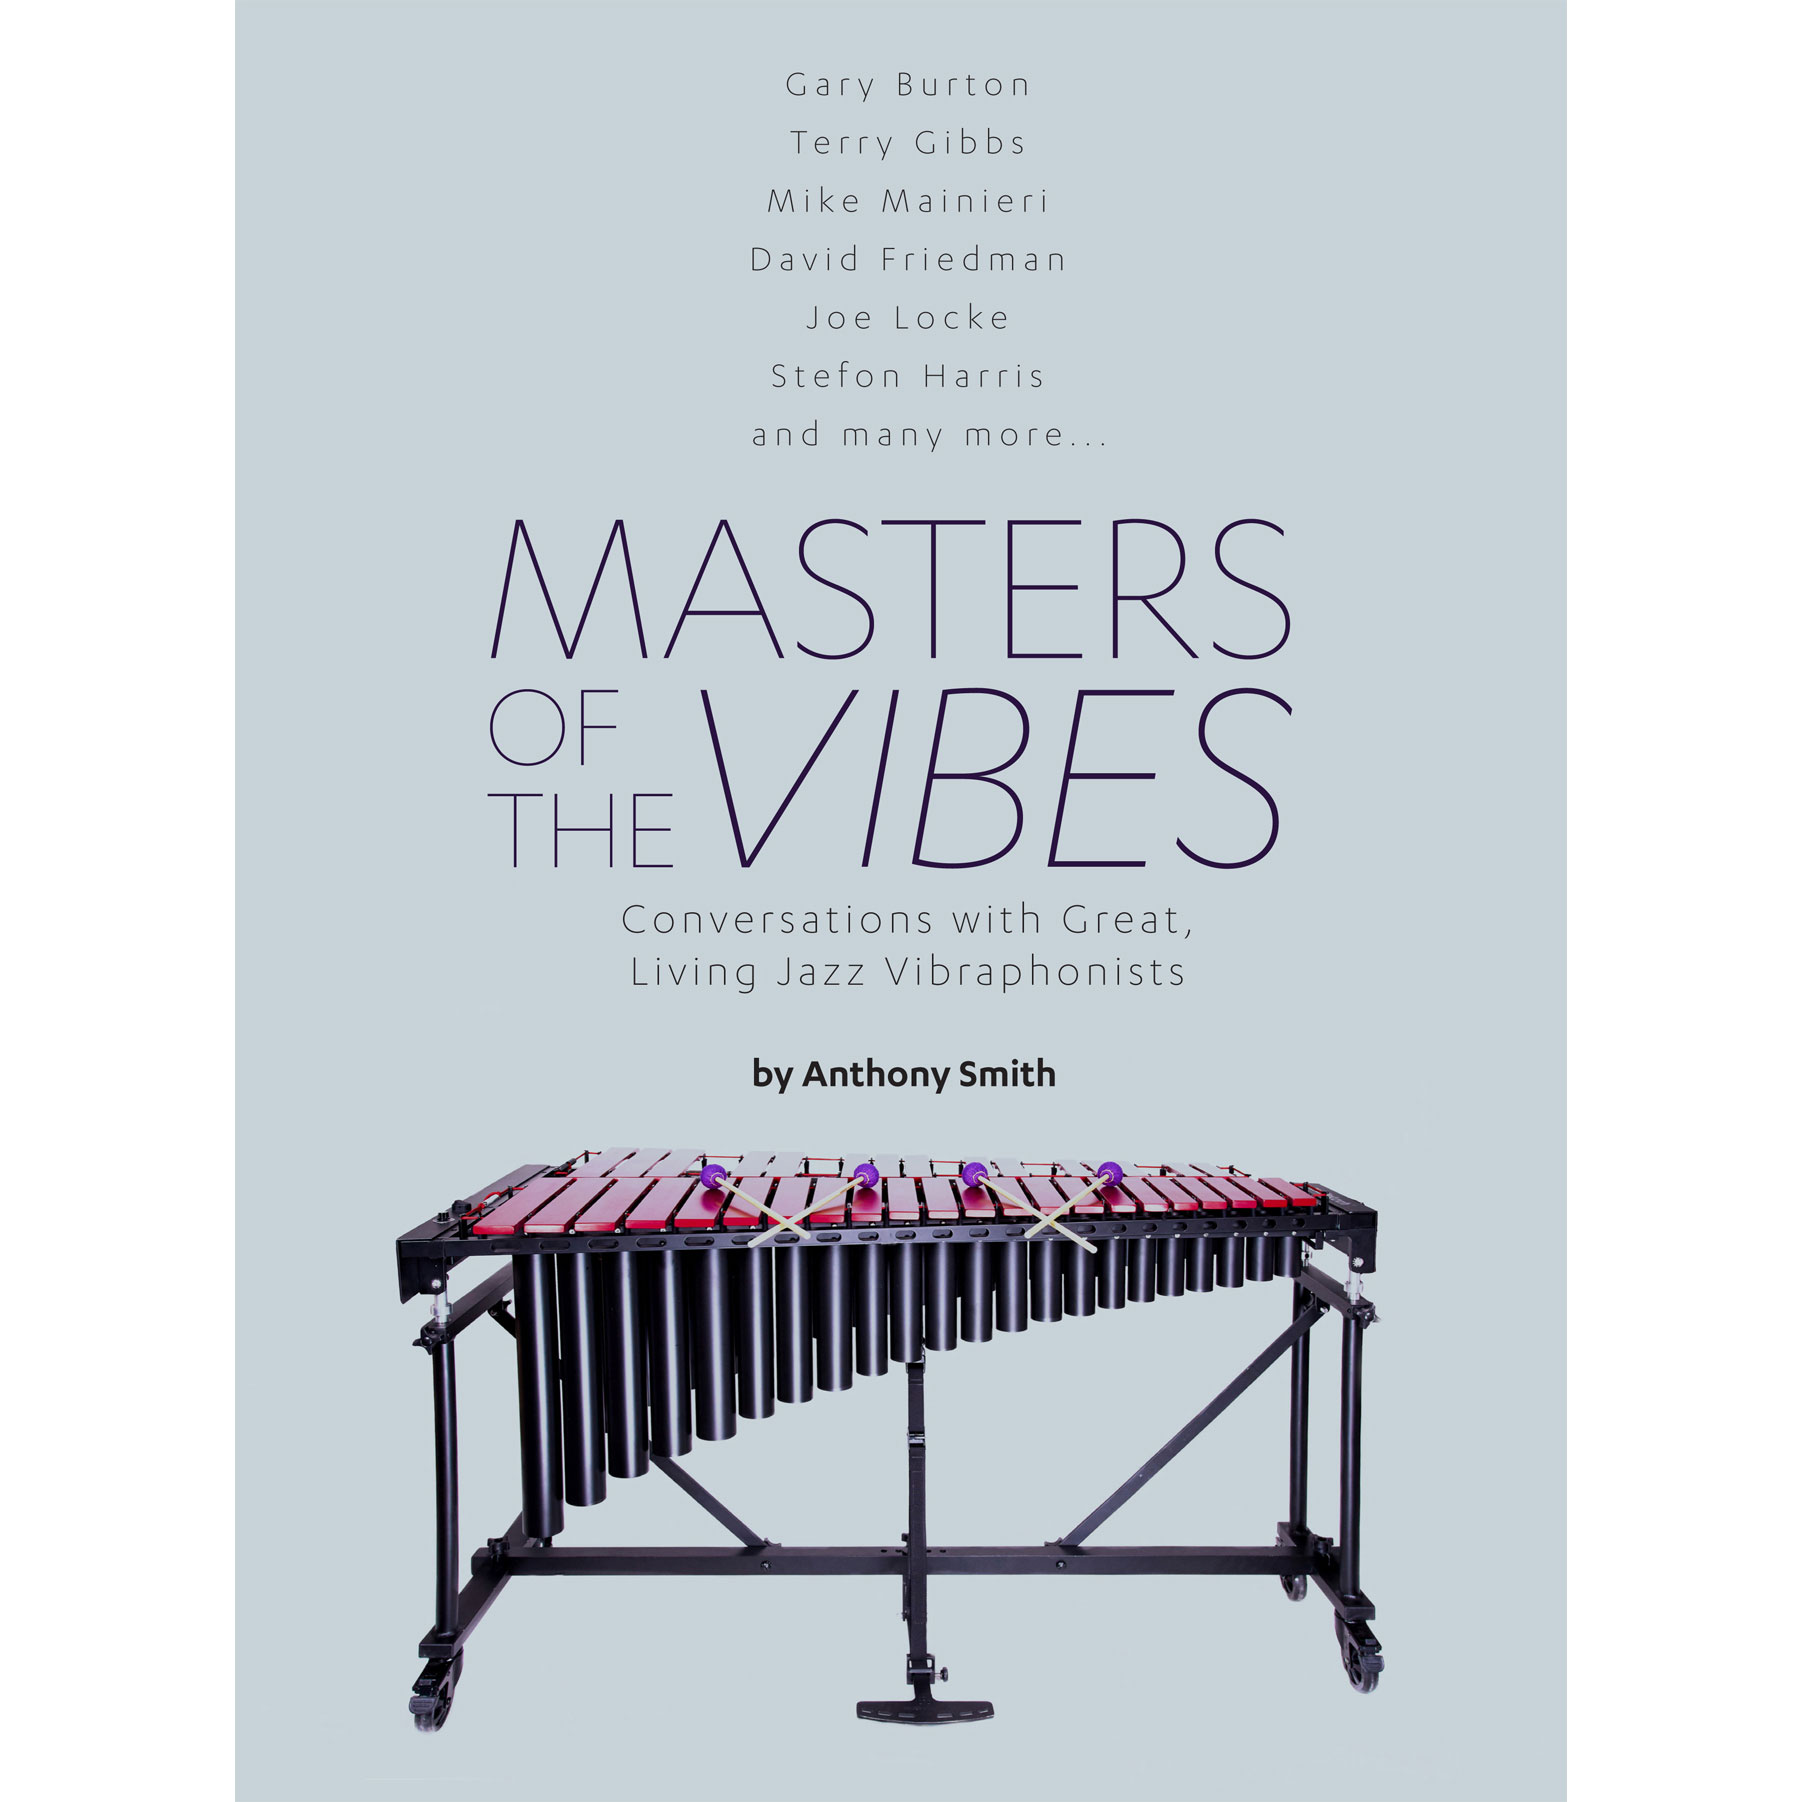 Masters of the Vibes by Anthony Smith